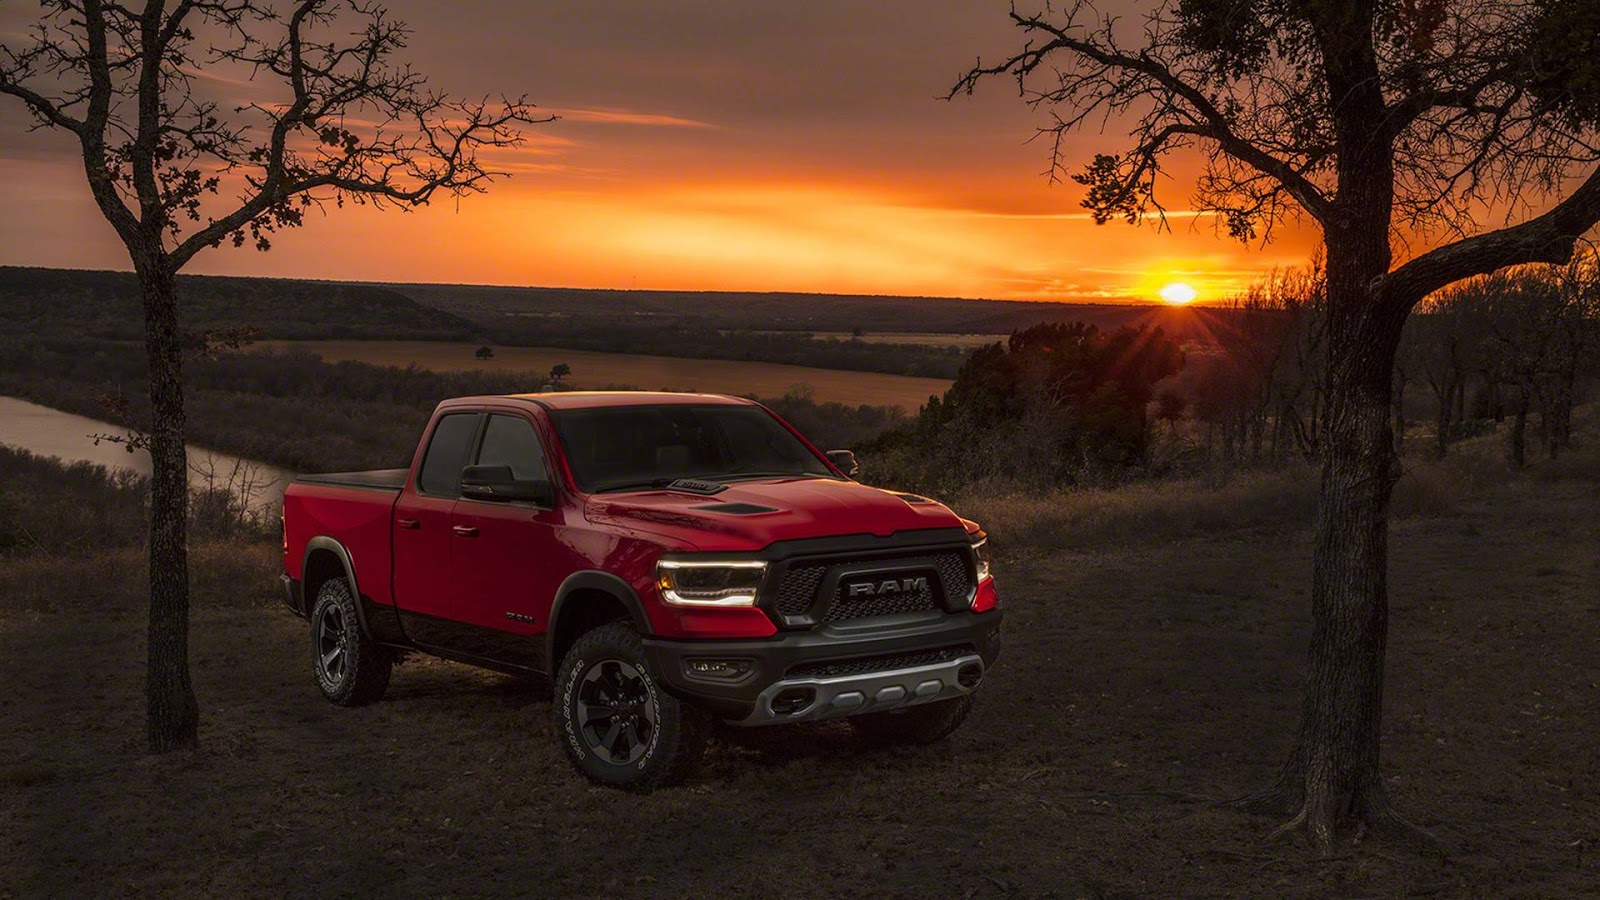 Dodge Challenger Car Wallpaper 2019 Ram 1500 Easter Egg Is An Indicator For The 707 Hp